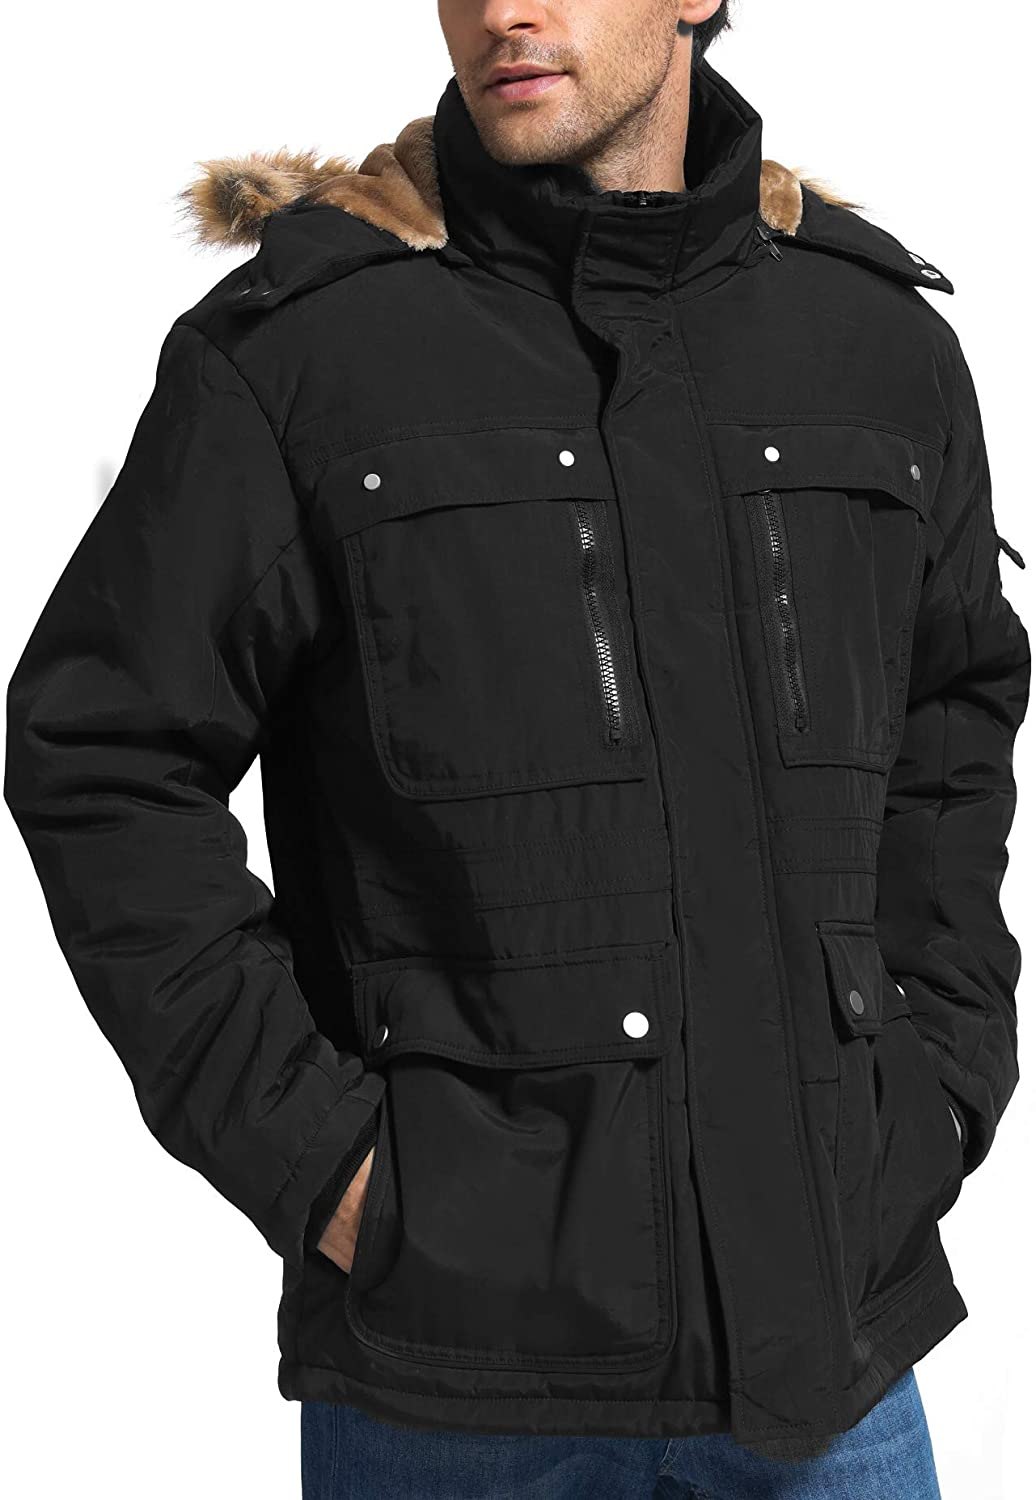 Snow Mountain Hooded Parka Jackets